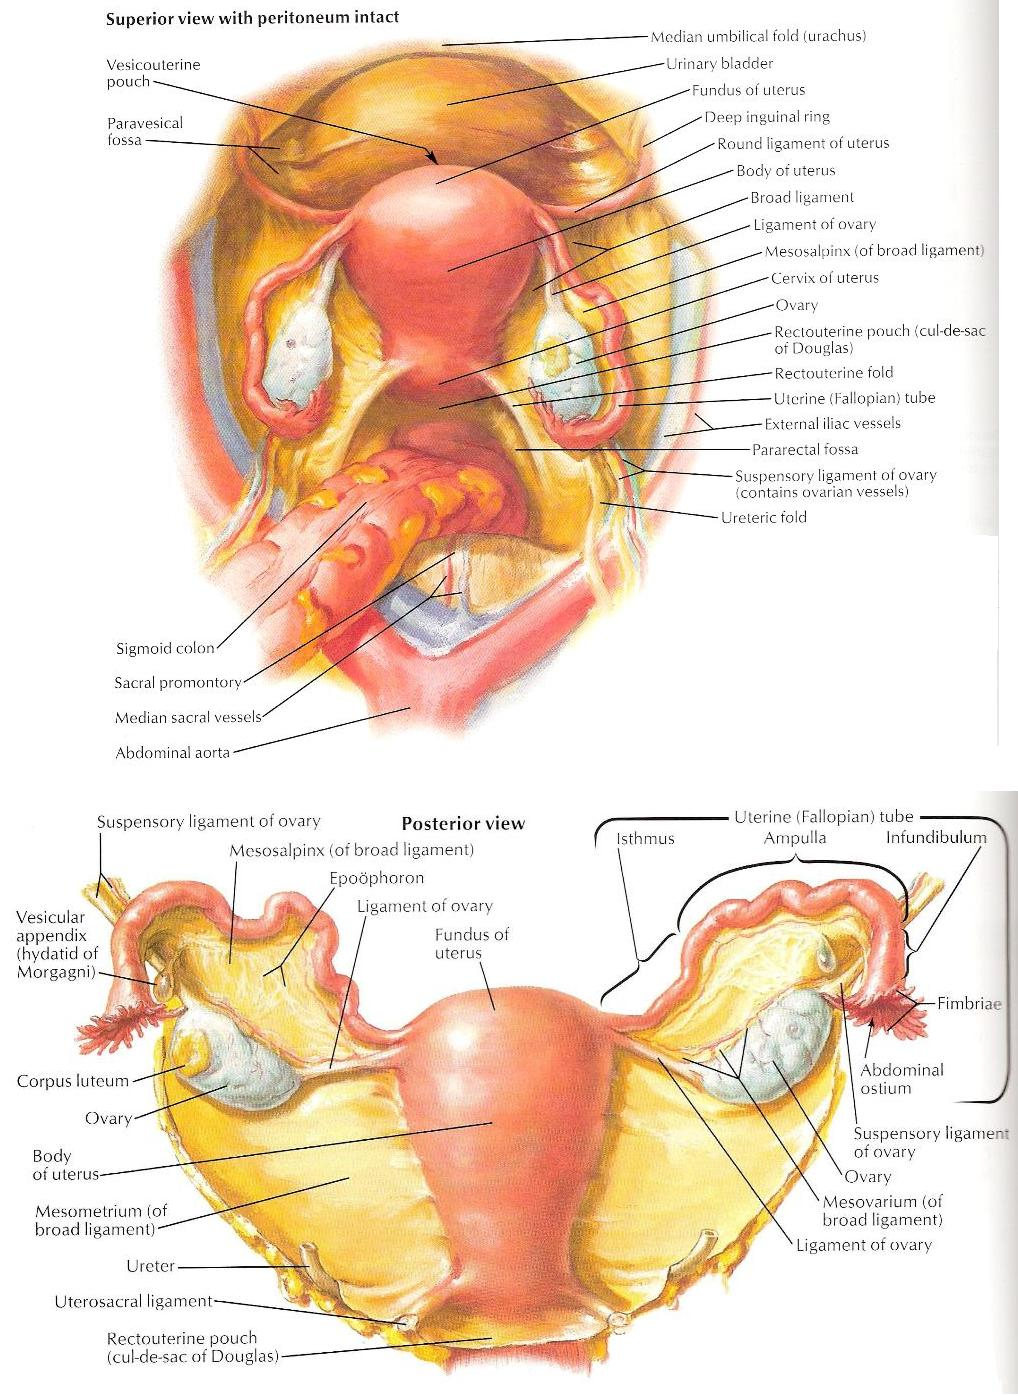 Pelvic structures of interest